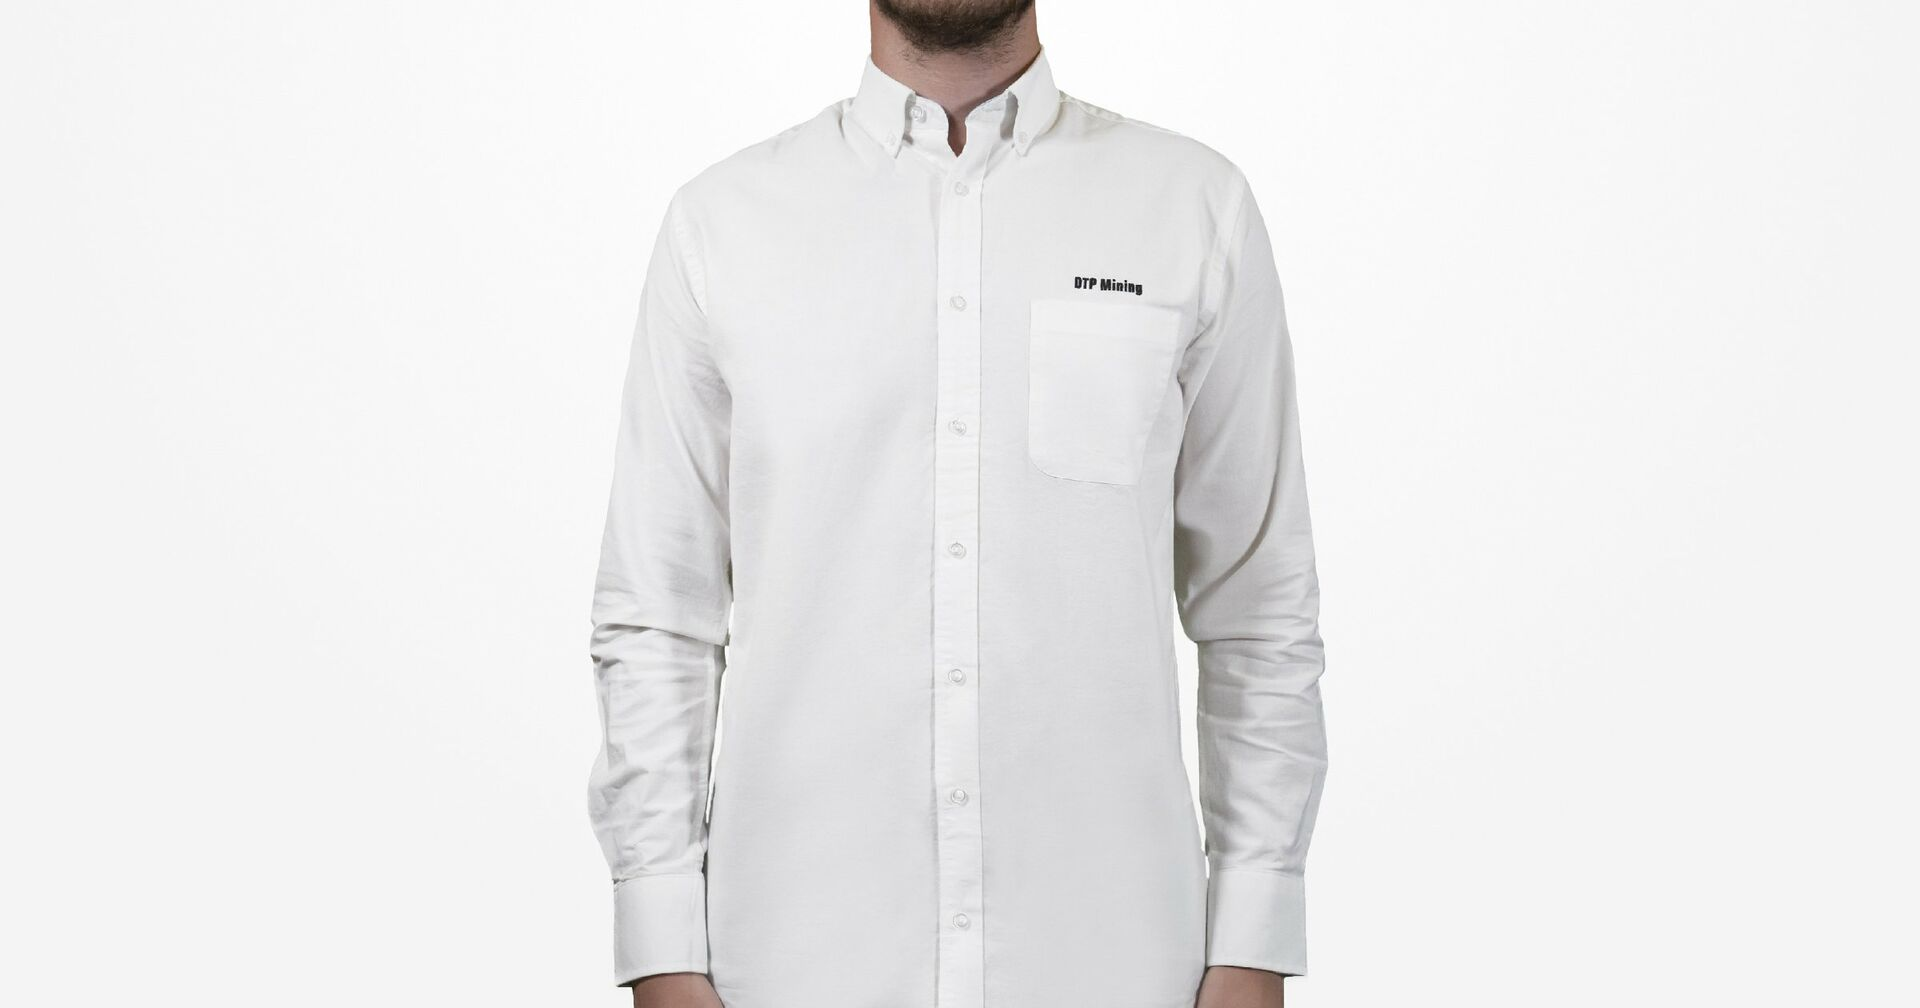 https://assets.main-gauche.com/m/3377f249be7ce249/web_image-chemise_personnalisee_brodee_large.jpg